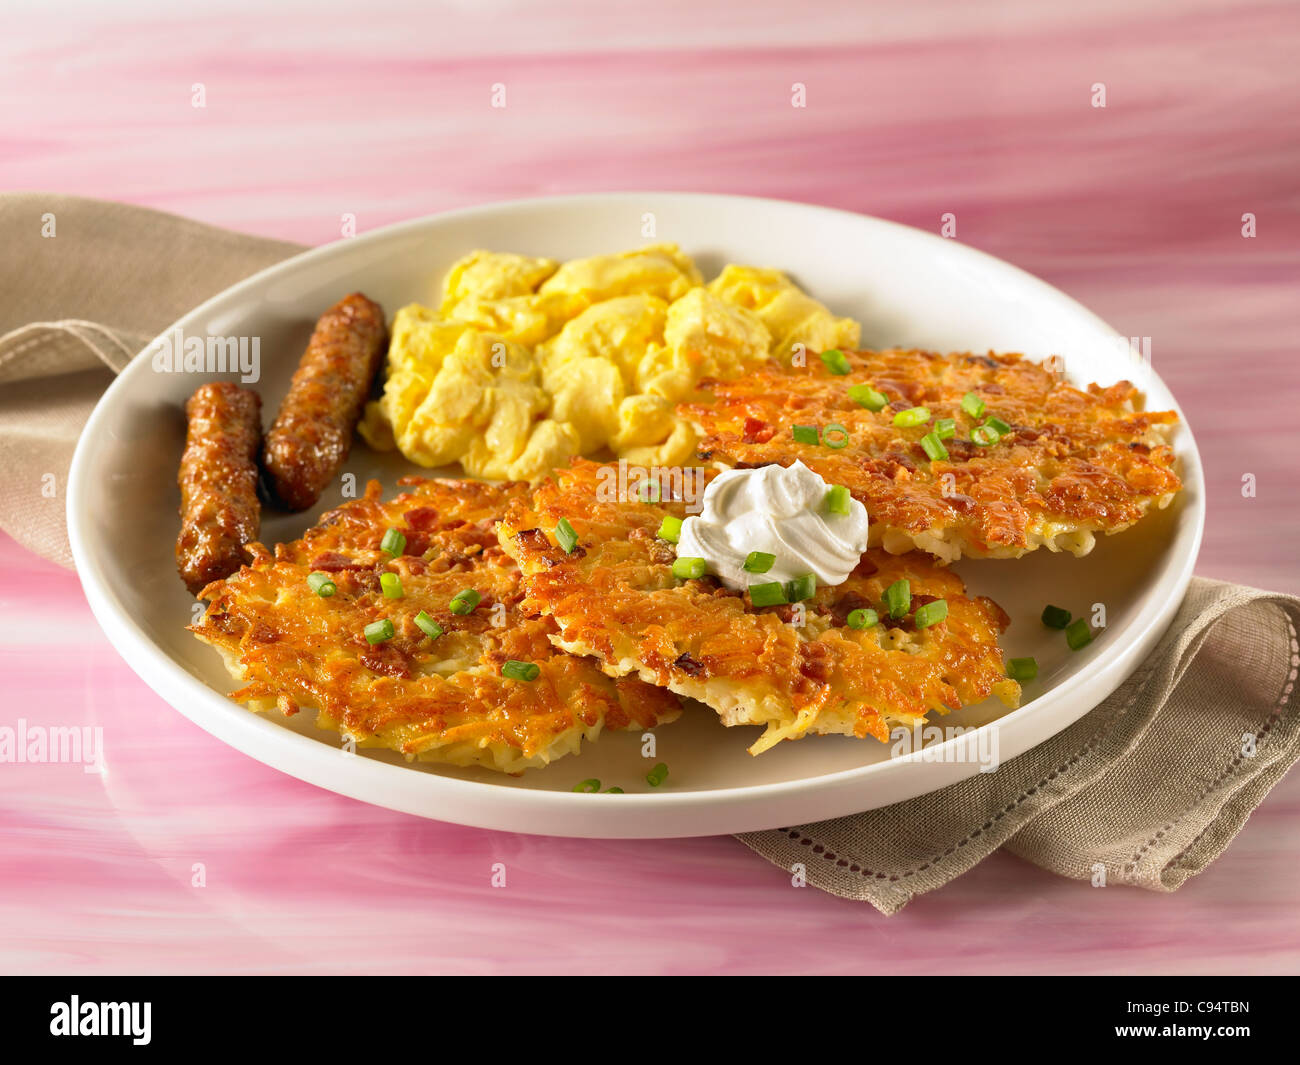 Potato pancake breakfast topped with sour cream and served with scrambled eggs and sausage - Stock Image